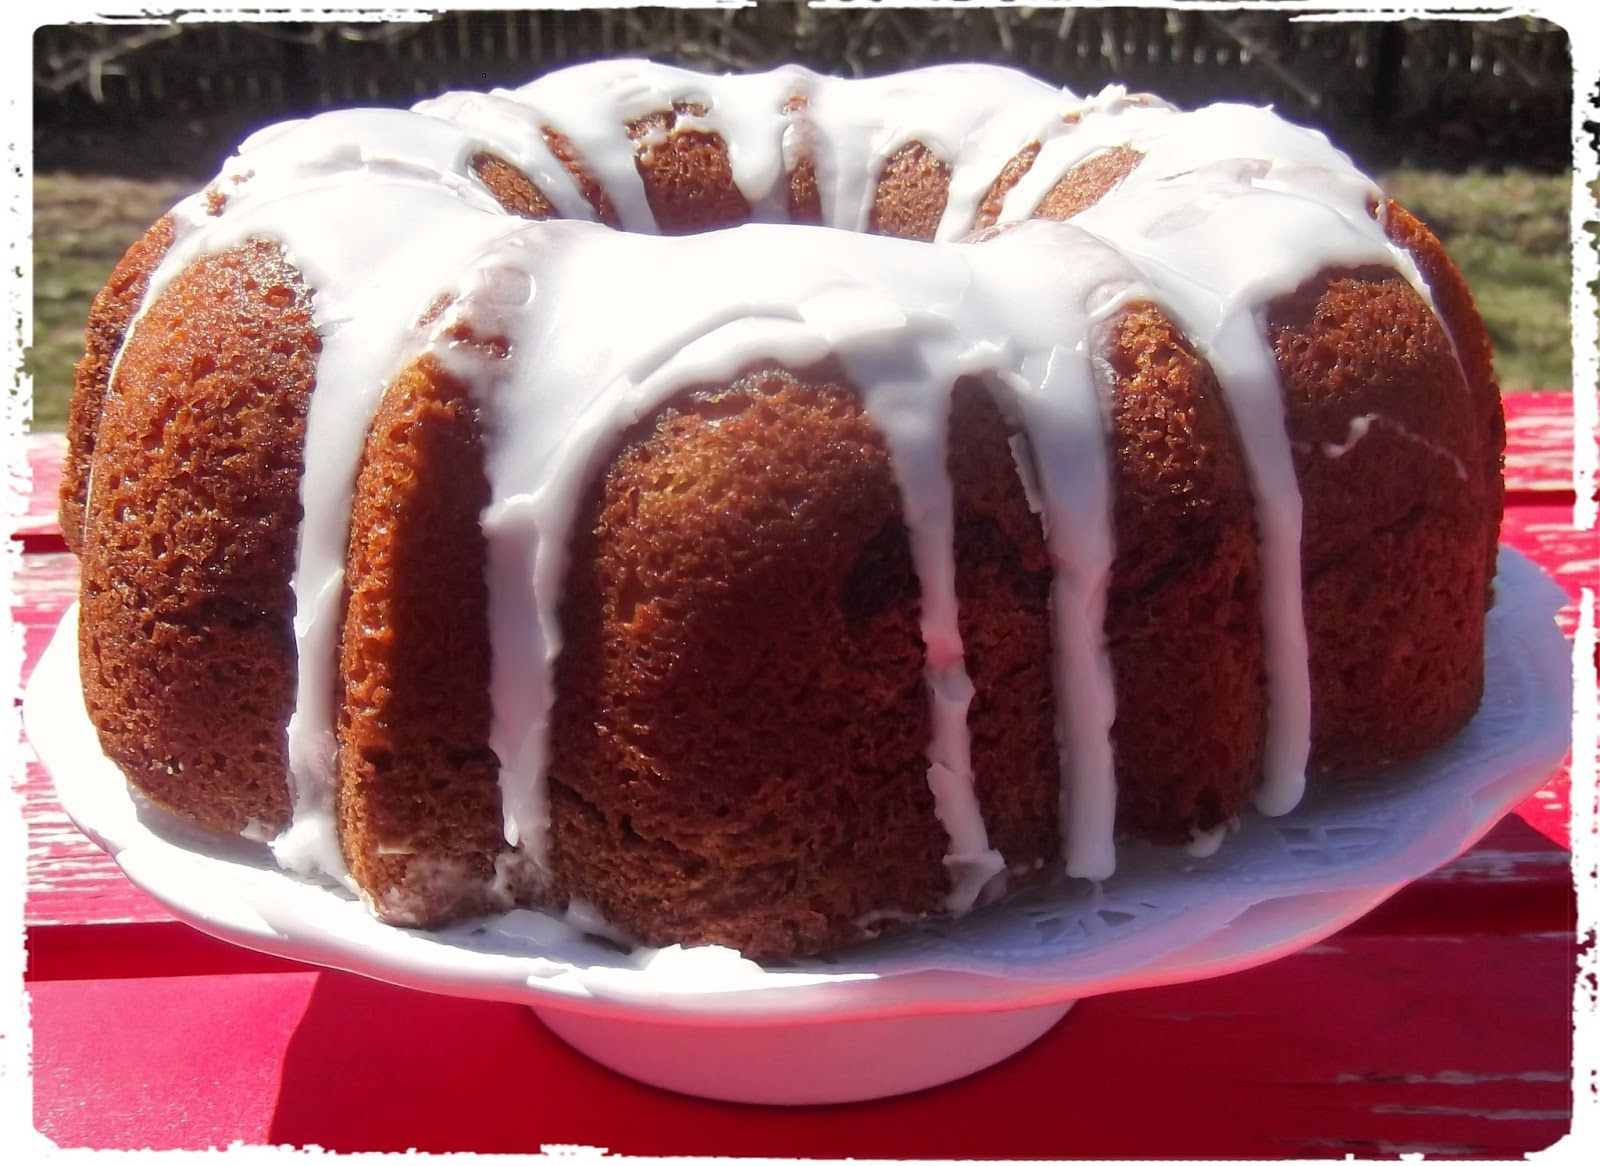 I Found This Coffee Cake Recipe On The Back Of Duncan Hines Moist Deluxe Butter Recipe Golden Cake Mix Coffee Cake Recipes Coffee Cake Boxed Cake Mixes Recipes